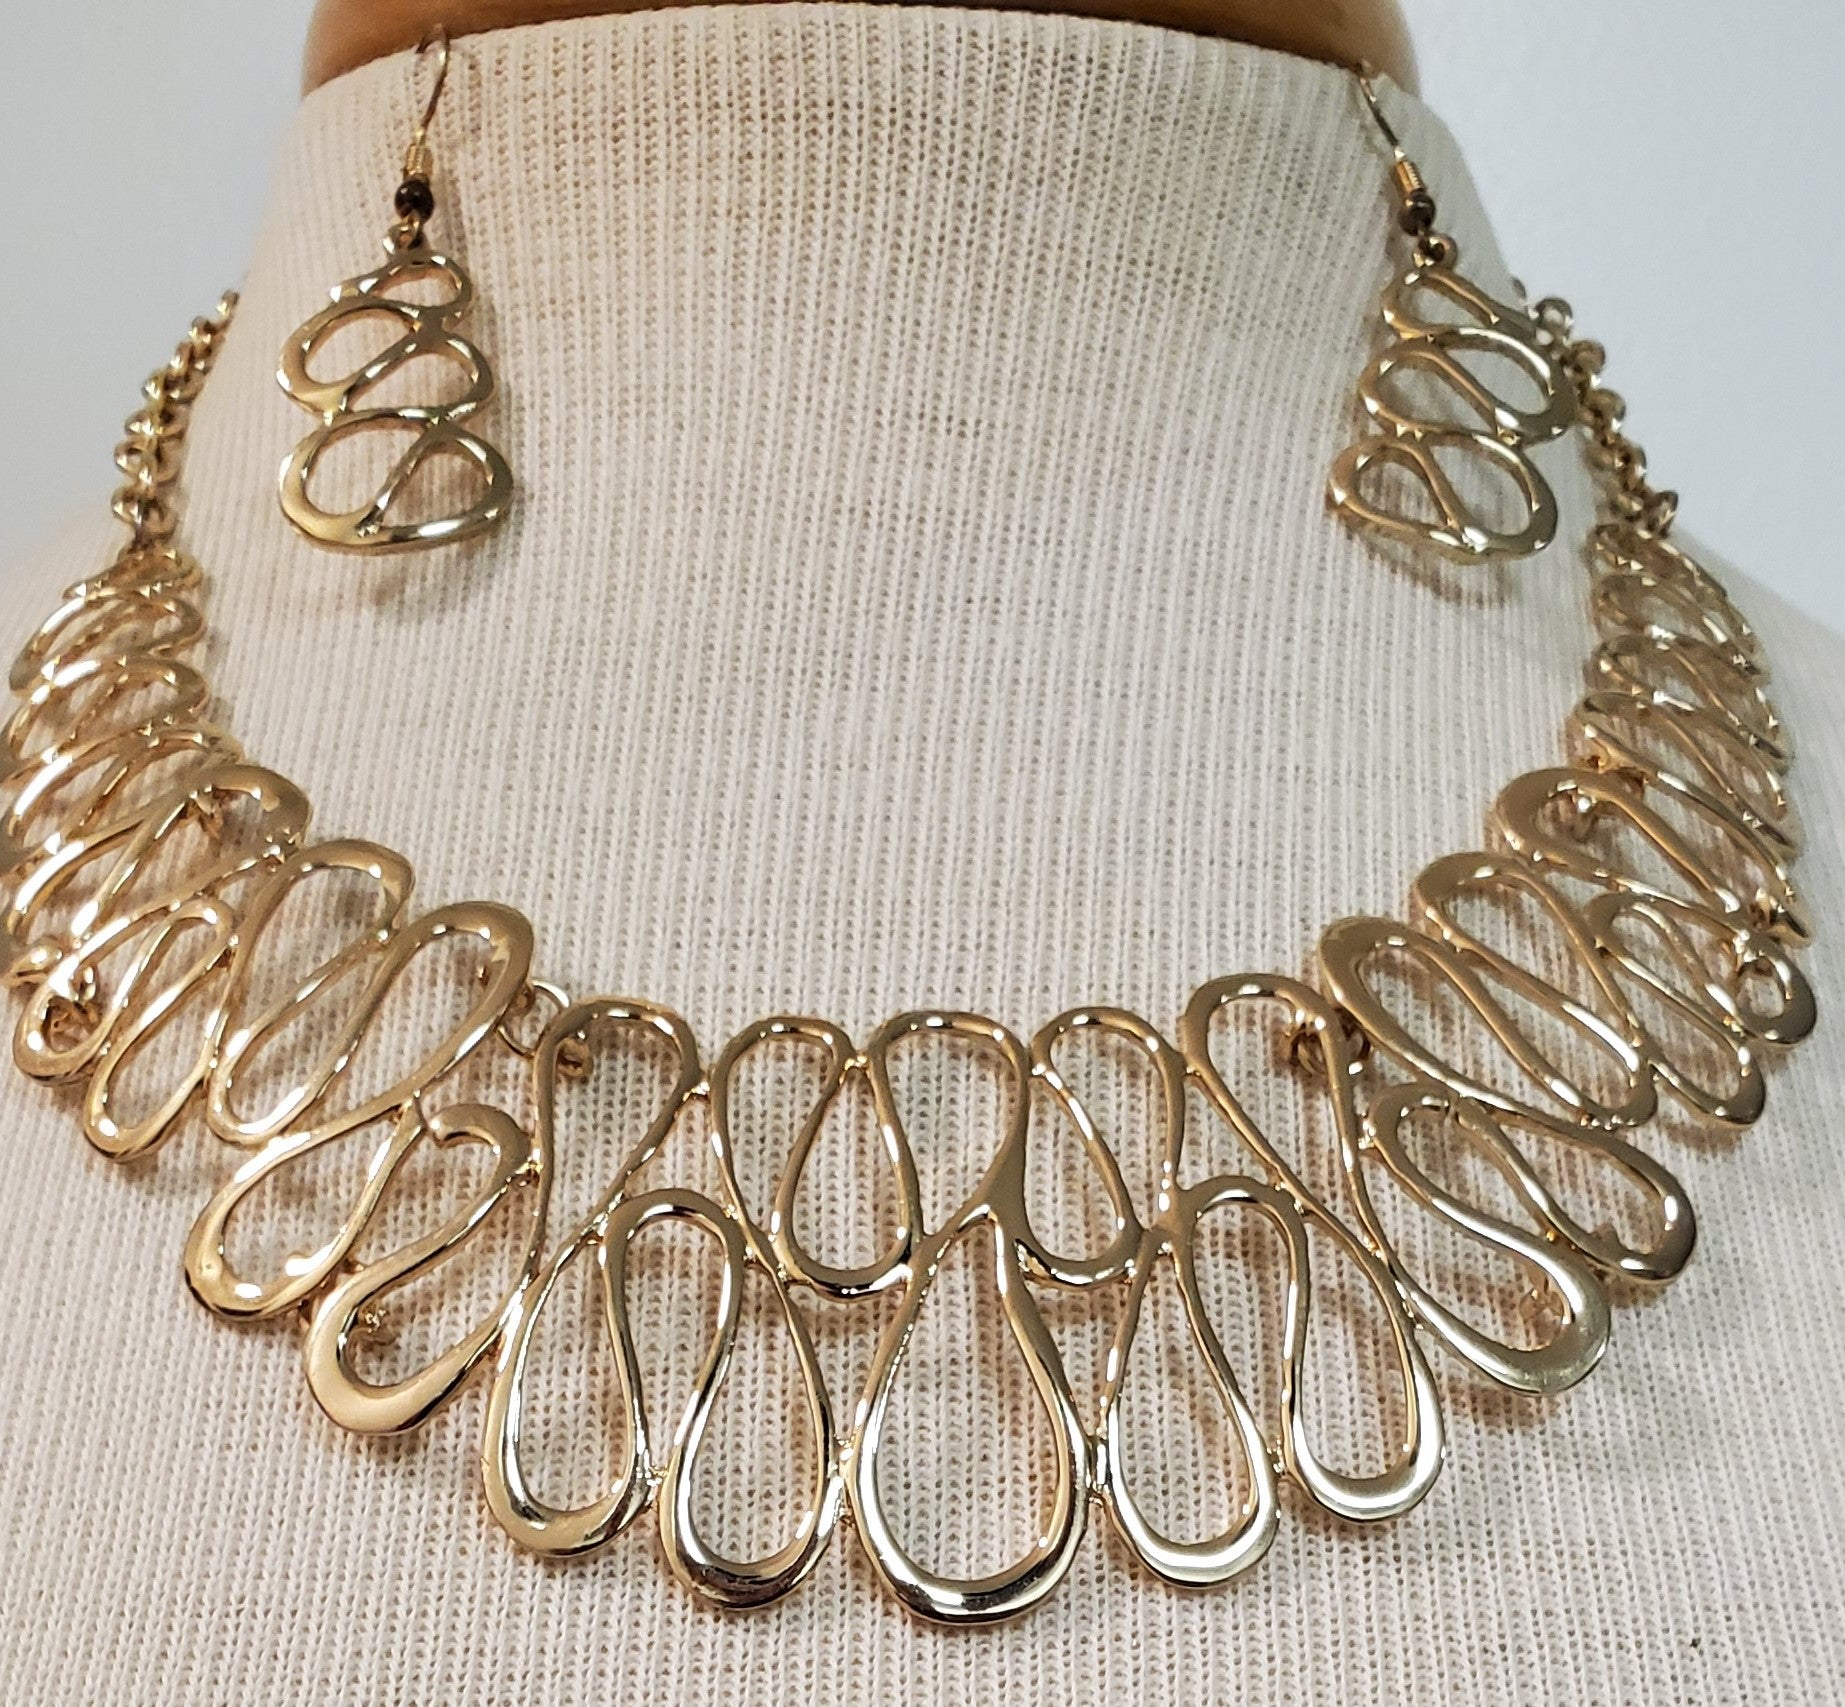 Gold Swirls Necklace and Earring Set